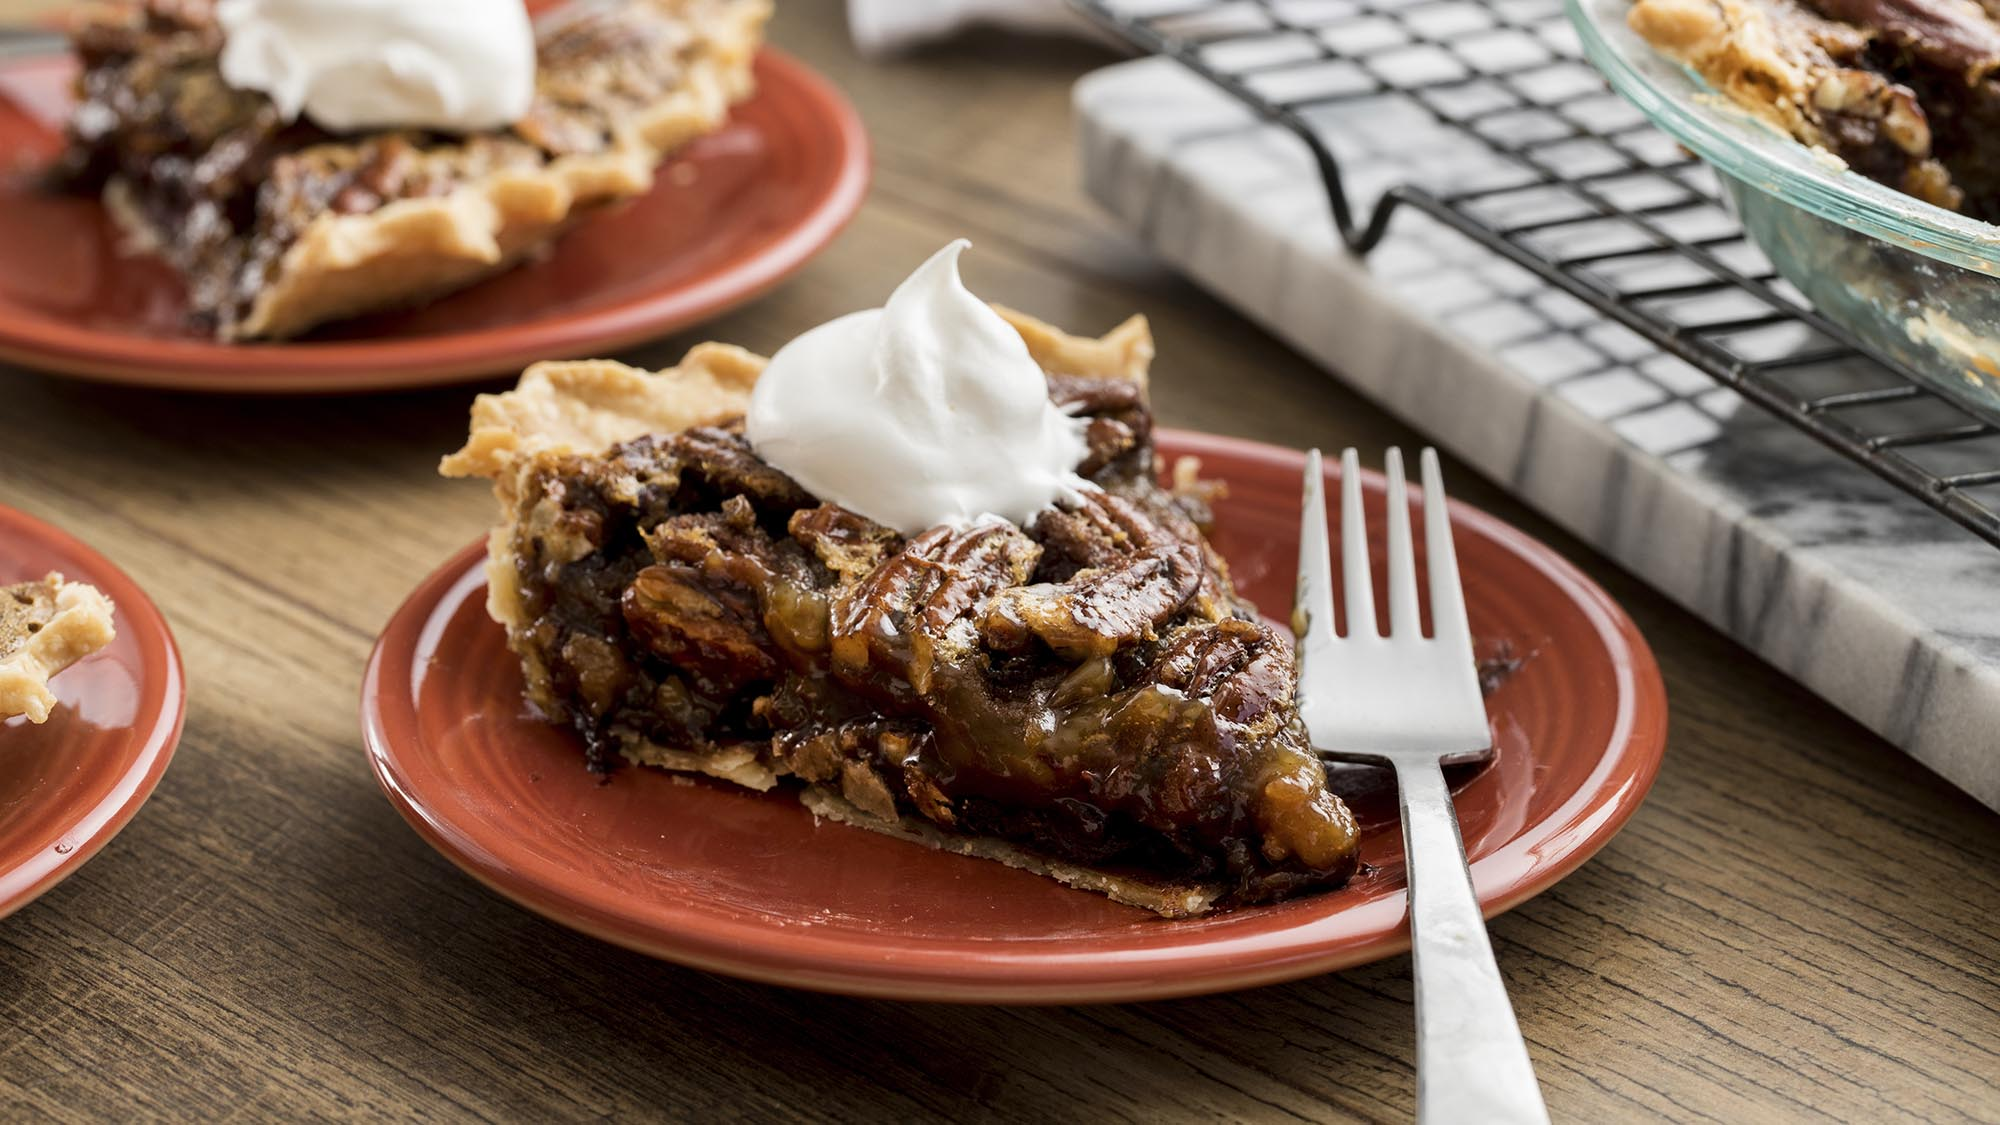 decadent_chocolate_pecan_pie_2000x1125.jpg